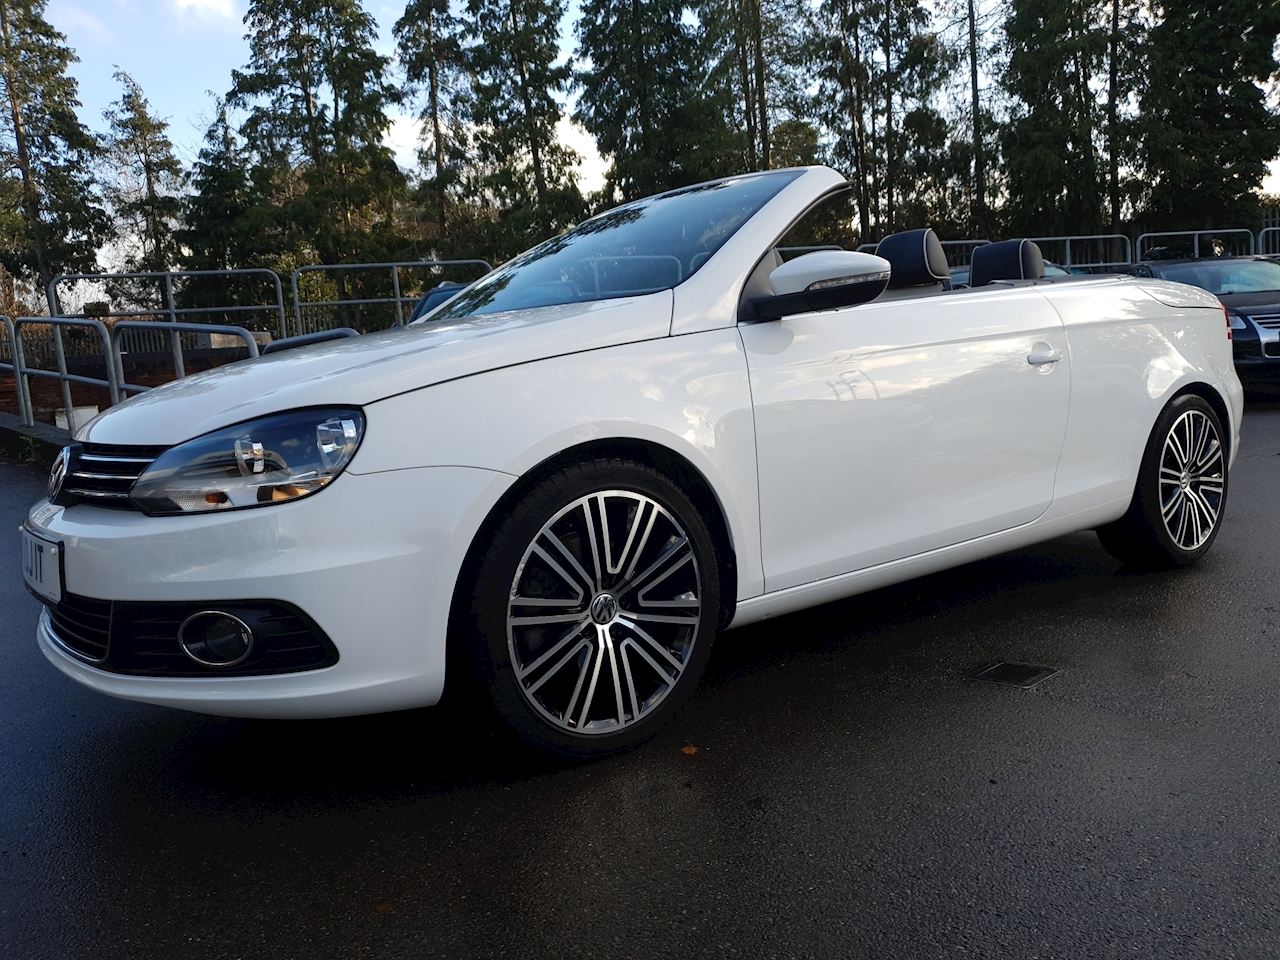 Volkswagen 2.0 TDI BlueMotion (7113 MILES) Tech CR Exclusive Cabriolet 2dr Diesel Manual (125 g/km, 138 bhp)